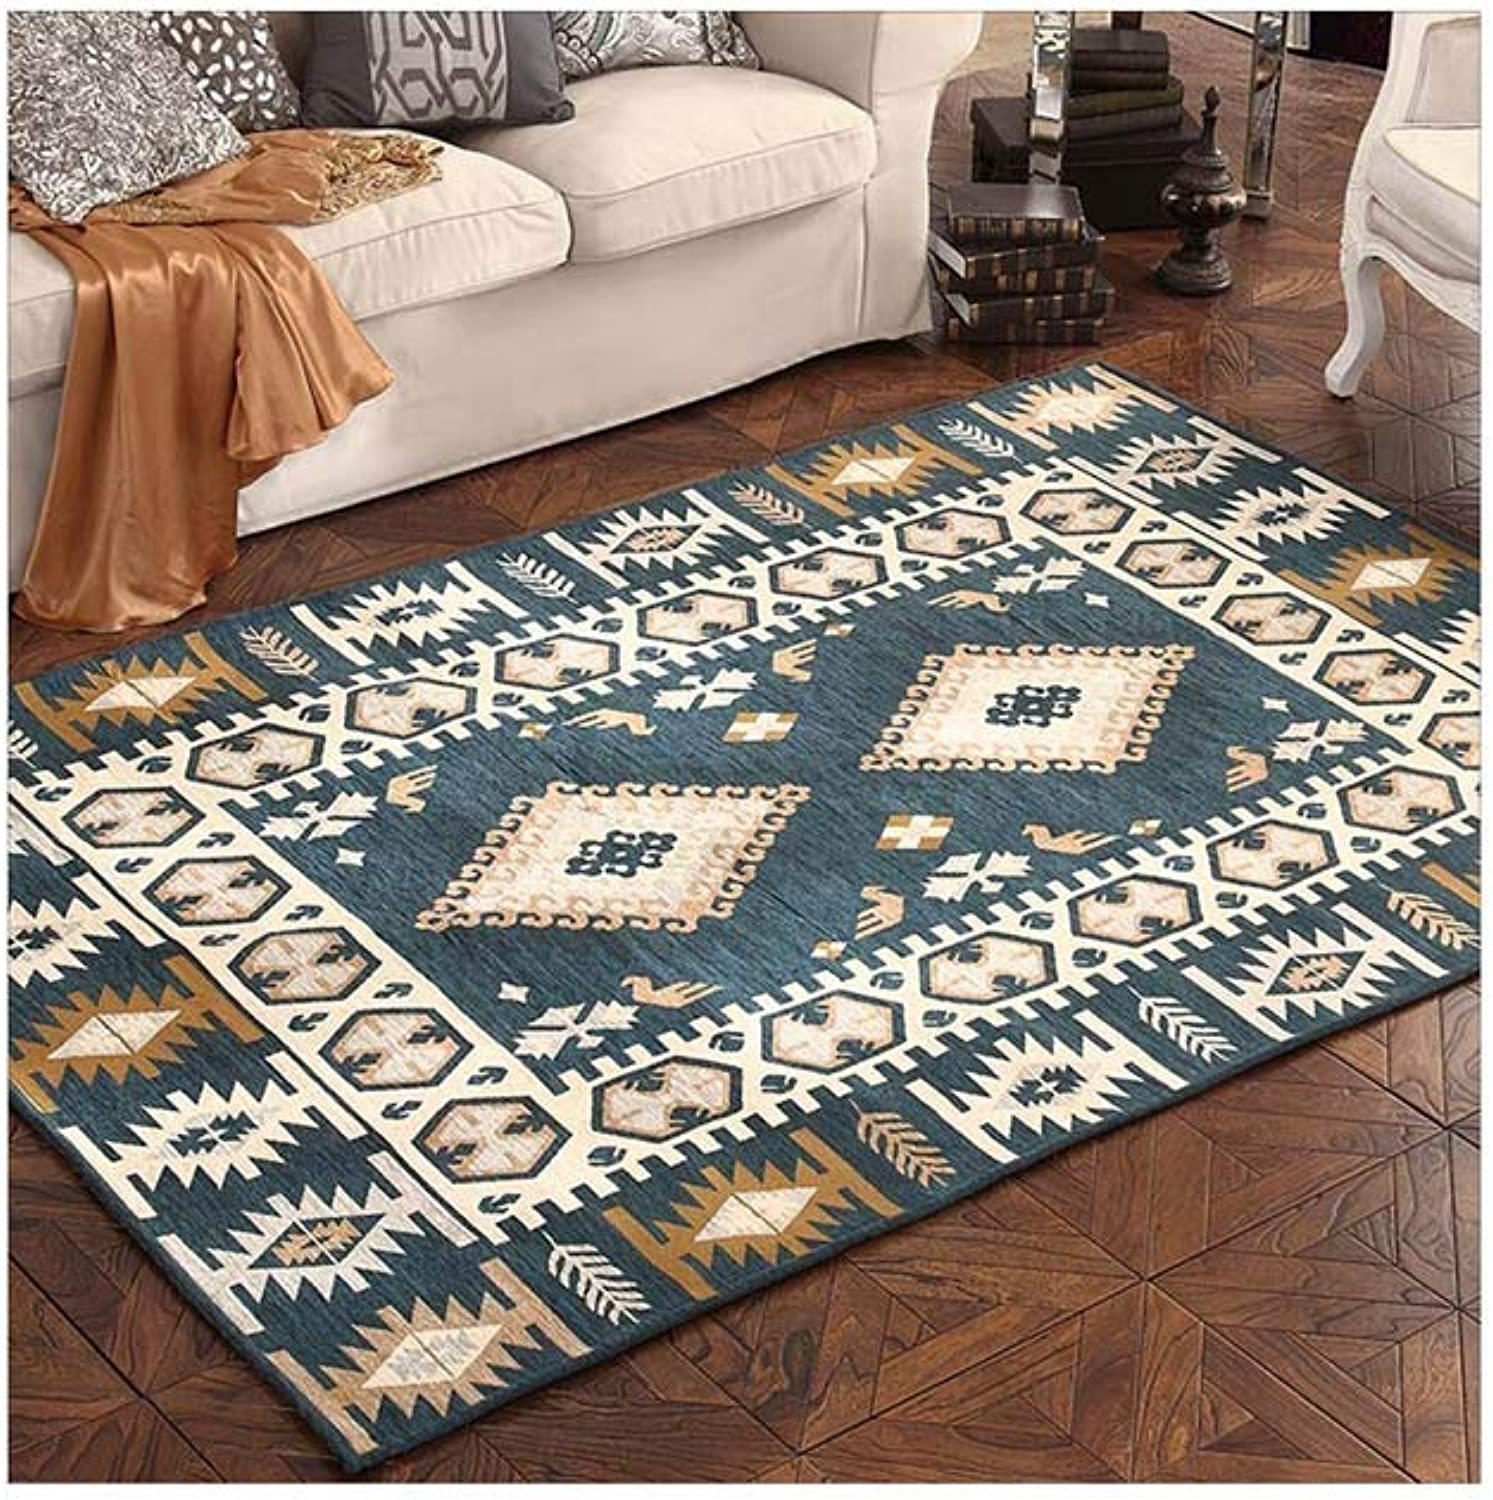 LPD Rugs Coffee Table Bedside Bedroom Carpet American Rustic Living Room (Size   76  150cm)